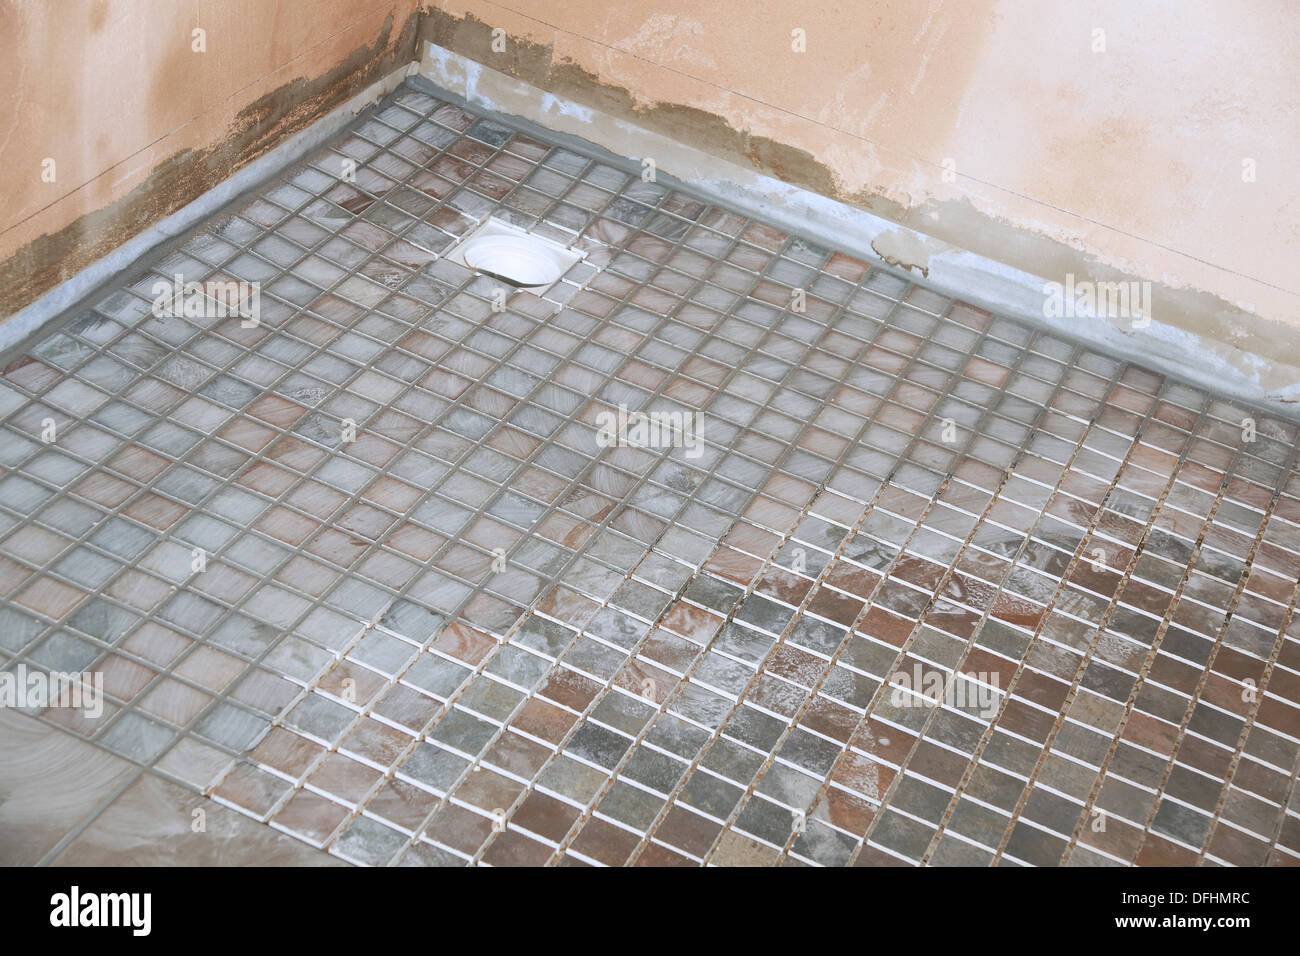 Non Slip Tiles Used For The Flooring In A Wet Room Shower Bathroom - Best non slip tiles for bathrooms